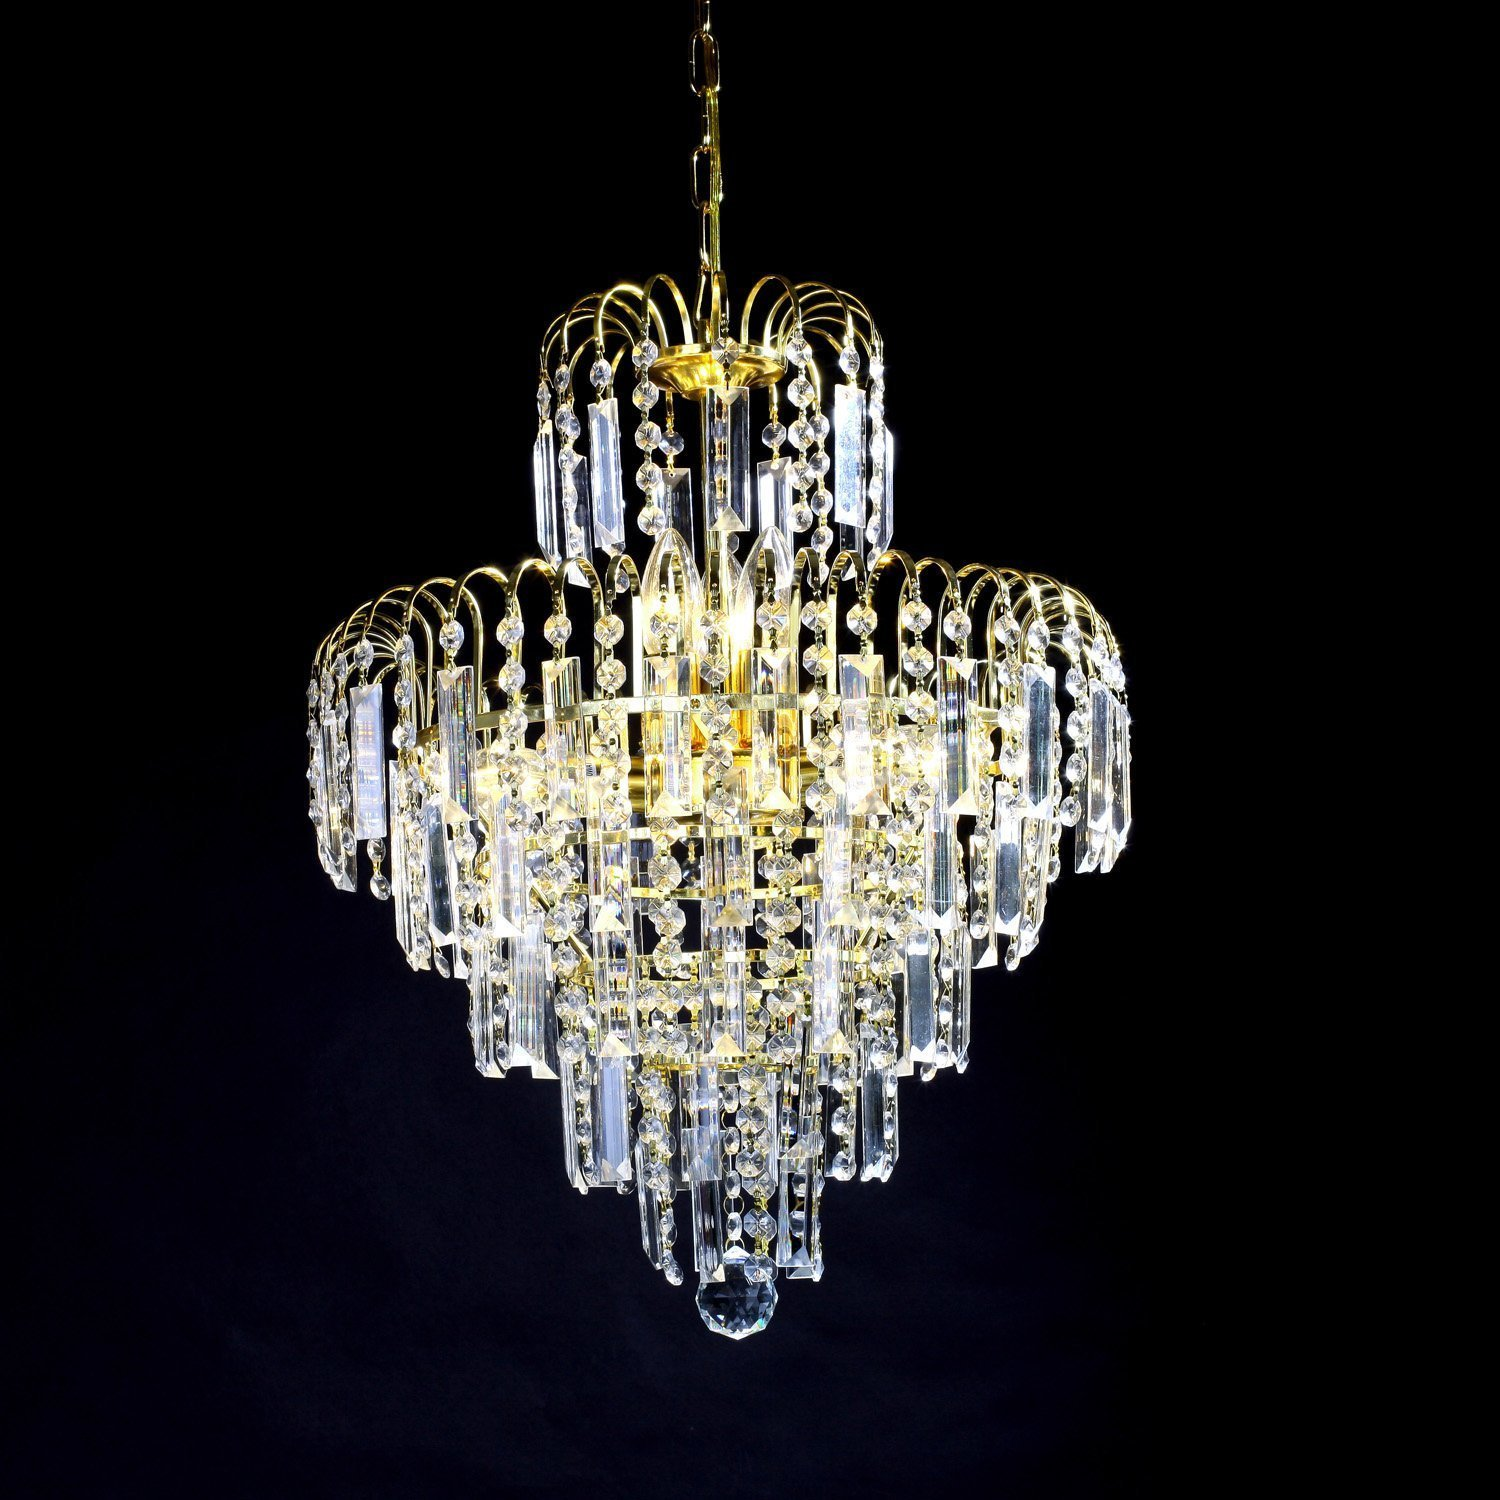 European-Style Luxury 6 Lights LED Chandelier Crystal Home Ceiling Fixture Pendant lamp Lighting Dining Room Bedroom Living Room white crystal pendants chandeliers lights vintage pendant lamp for living room bedroom europe style pendant lamps home lighting